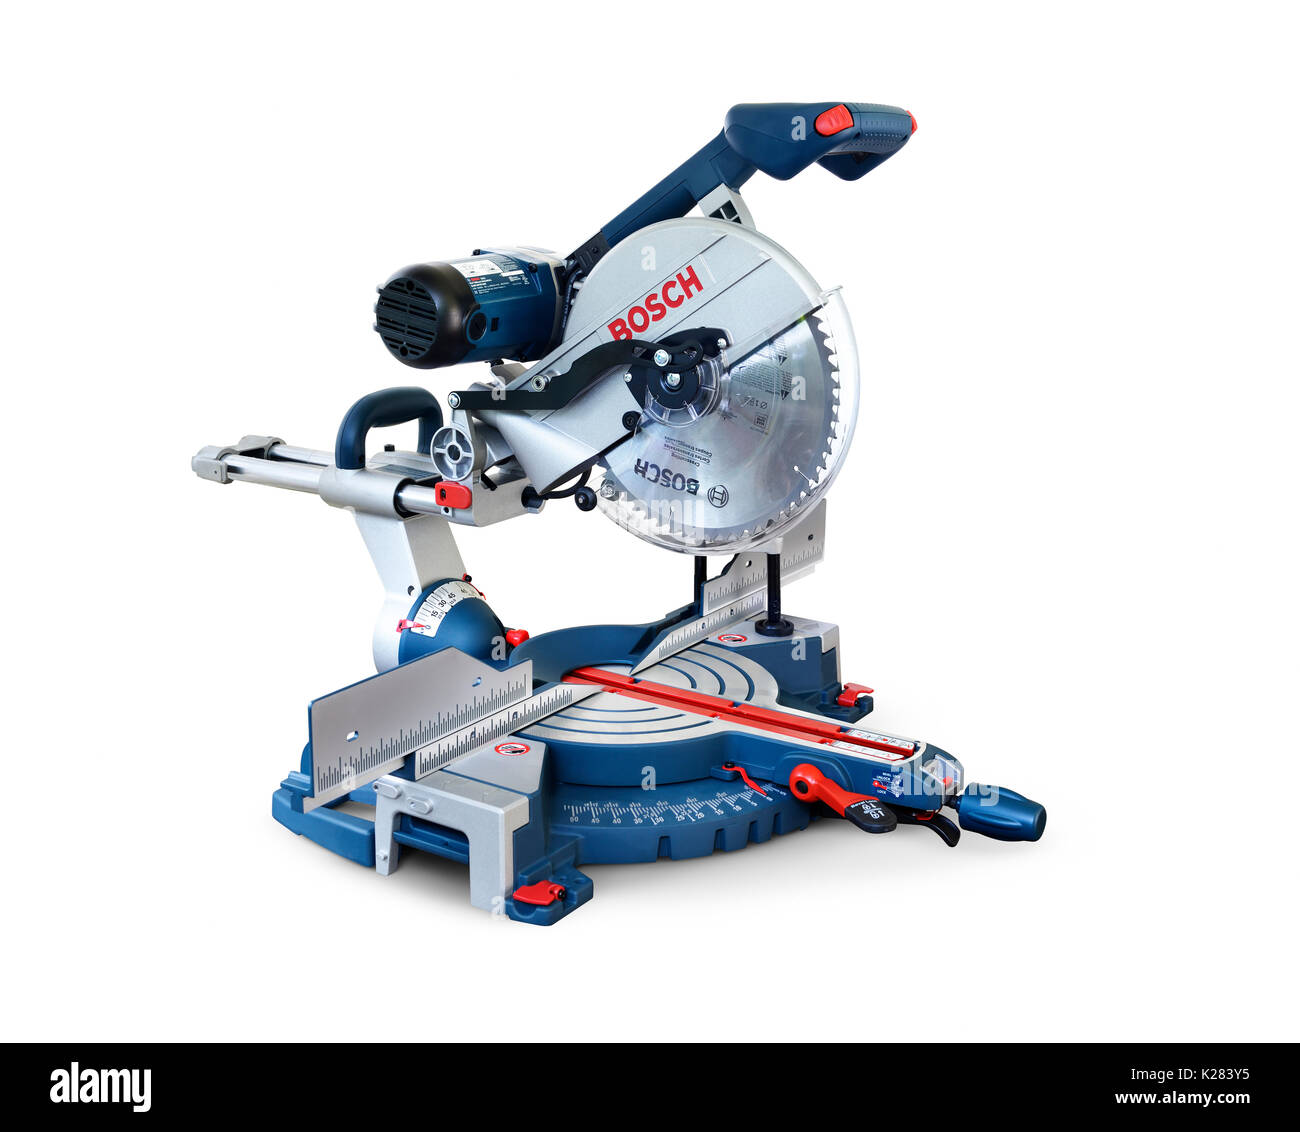 Bosch miter saw, mitre saw power tool isolated on white background with clipping path - Stock Image